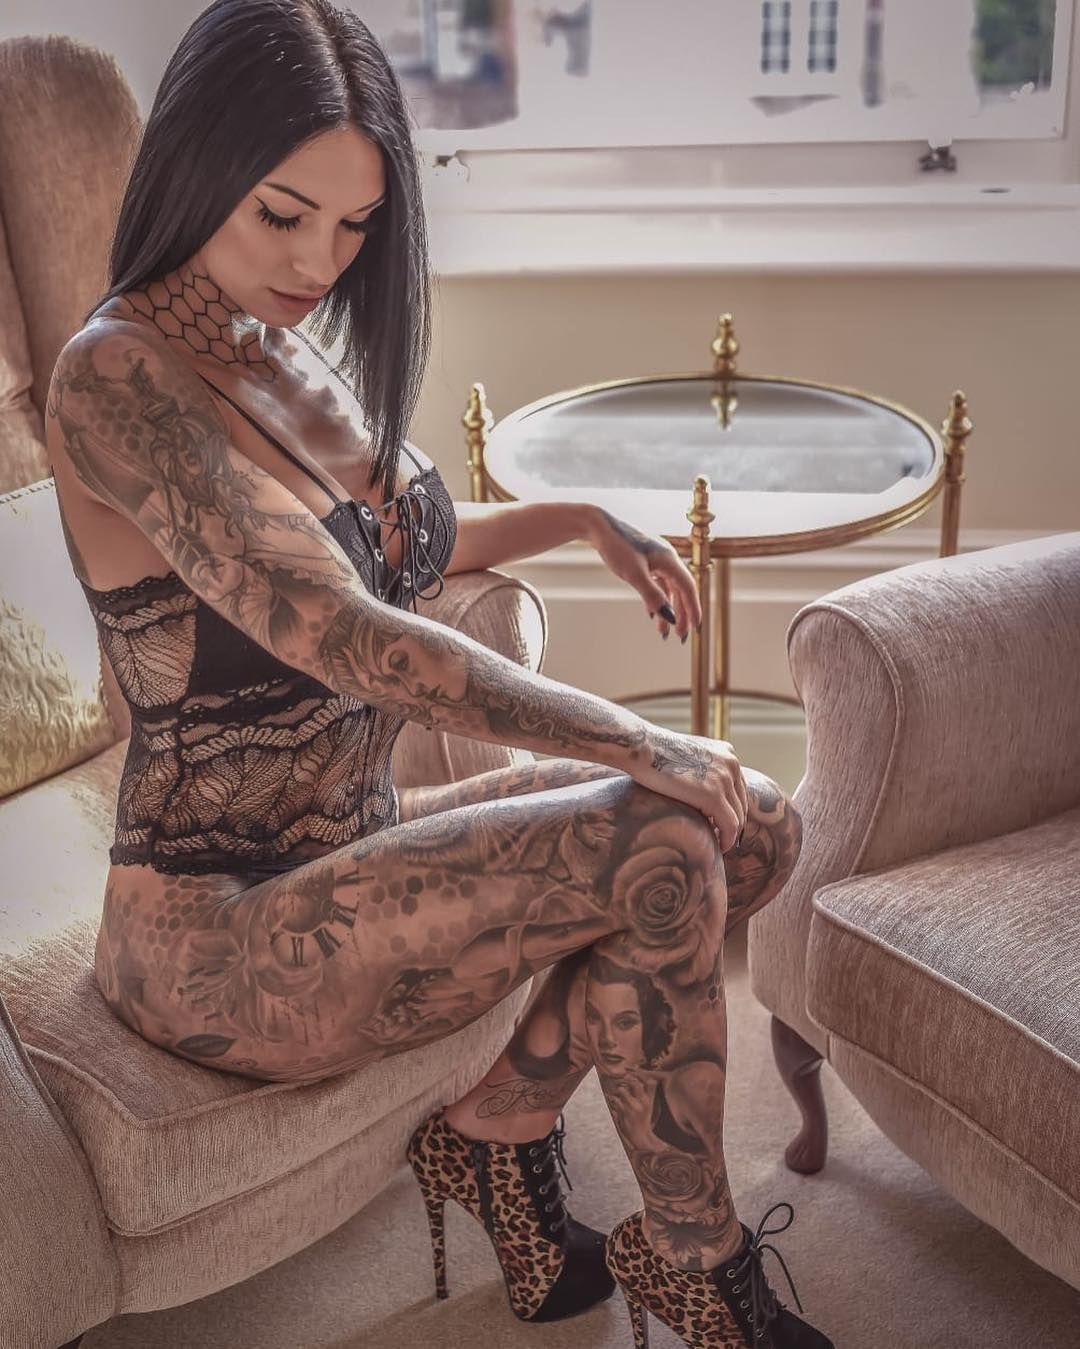 59aba1366 A list of the Best Tattoo Models gallery from around the world. America,  Europe, Asia, Australia | World Tattoo Gallery